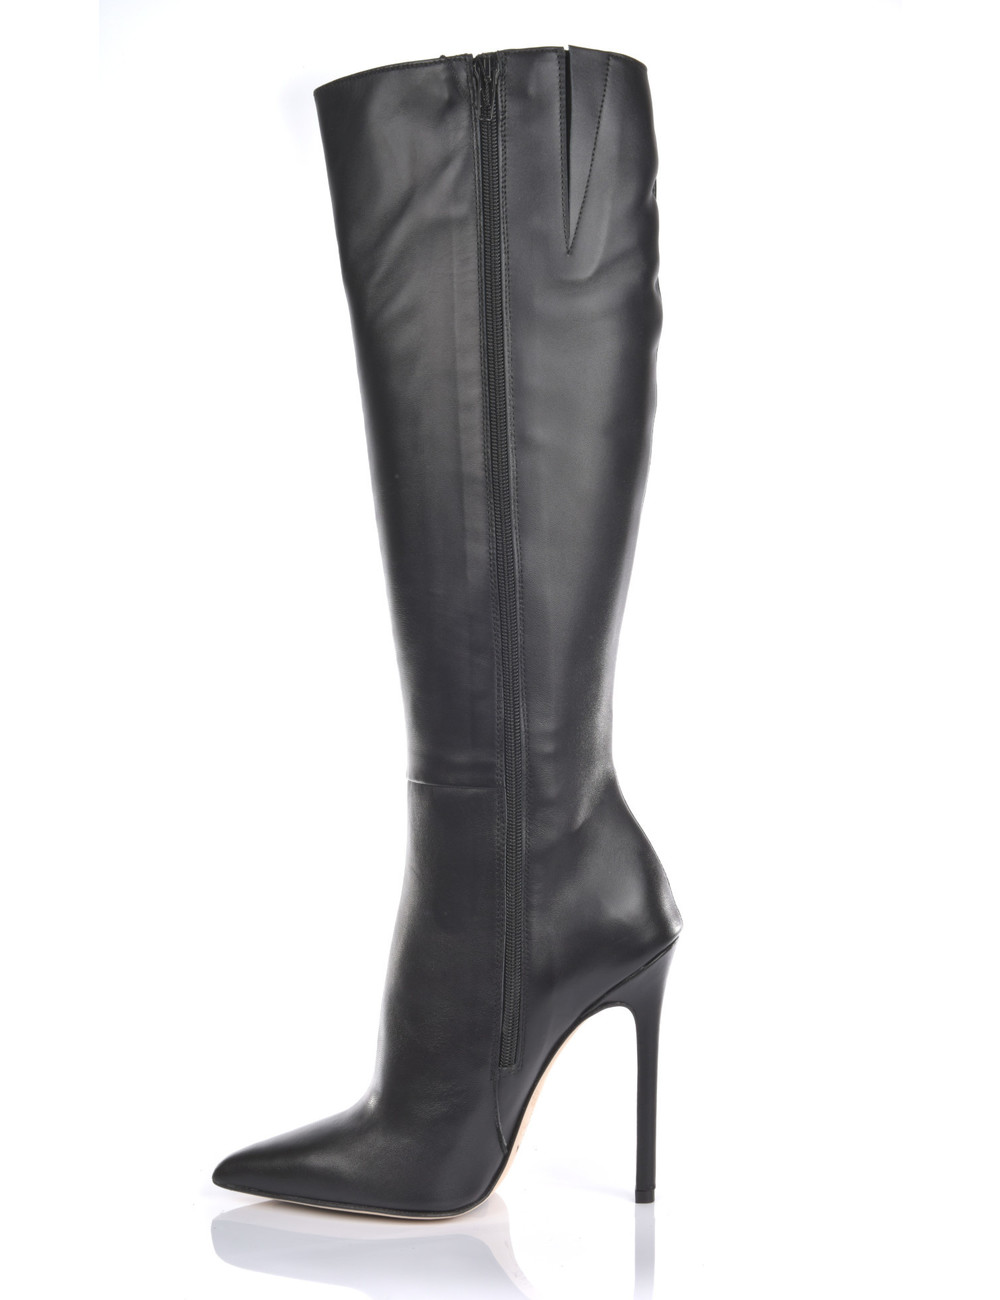 Sanctum High Italian knee boots VESTA with stiletto heels in real leather